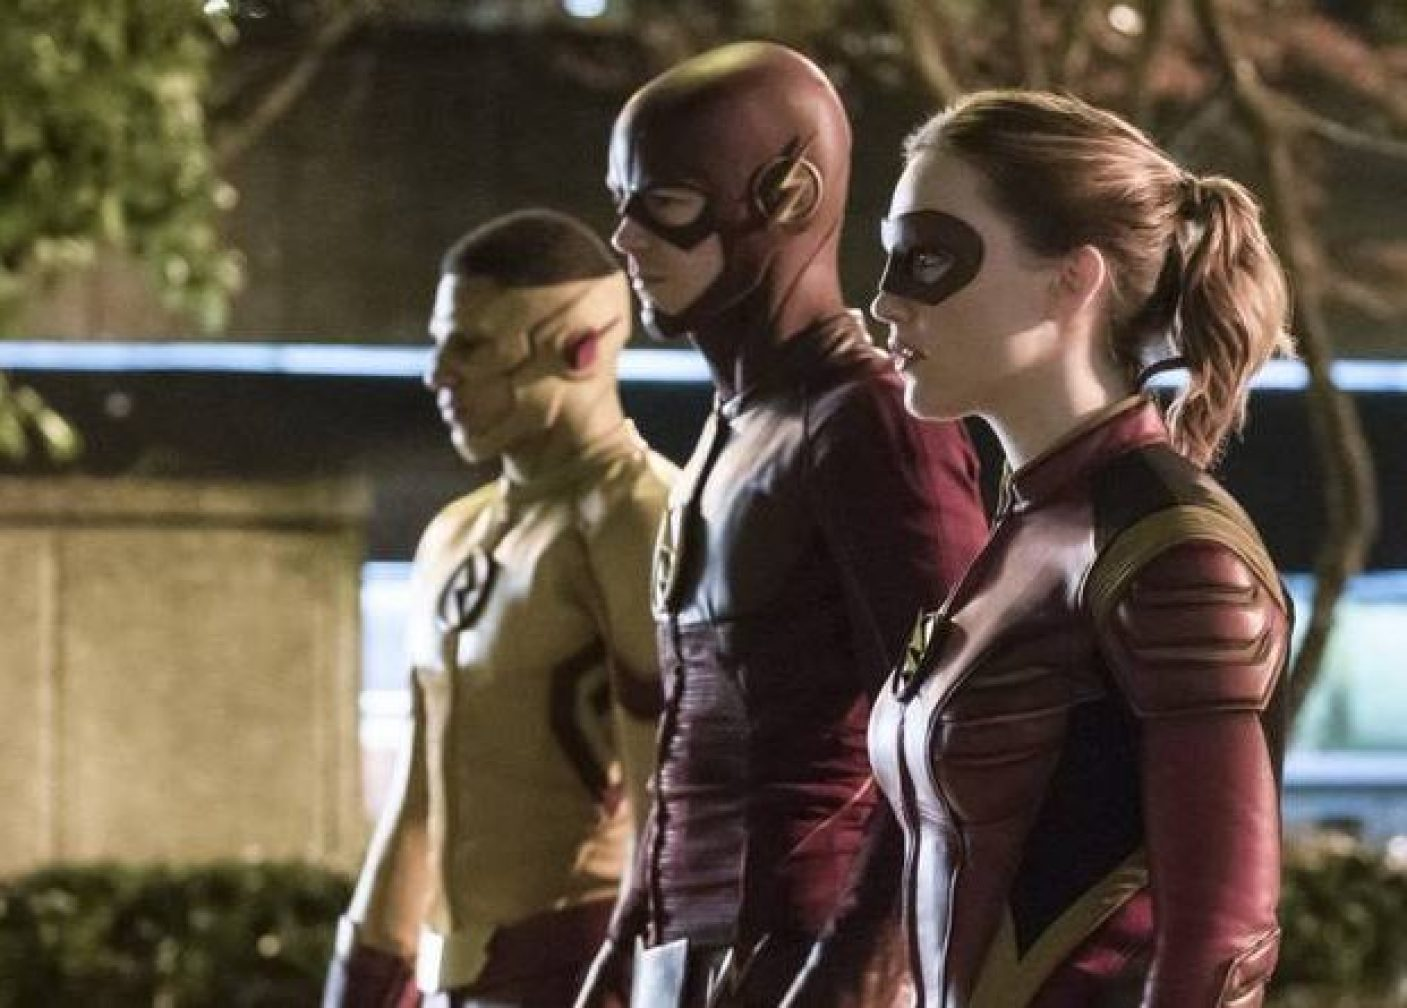 Savitar, The Flash, The Flash review, The Flash 3x15, Grant Gustin, DT2ComicsChat, David Taylor II